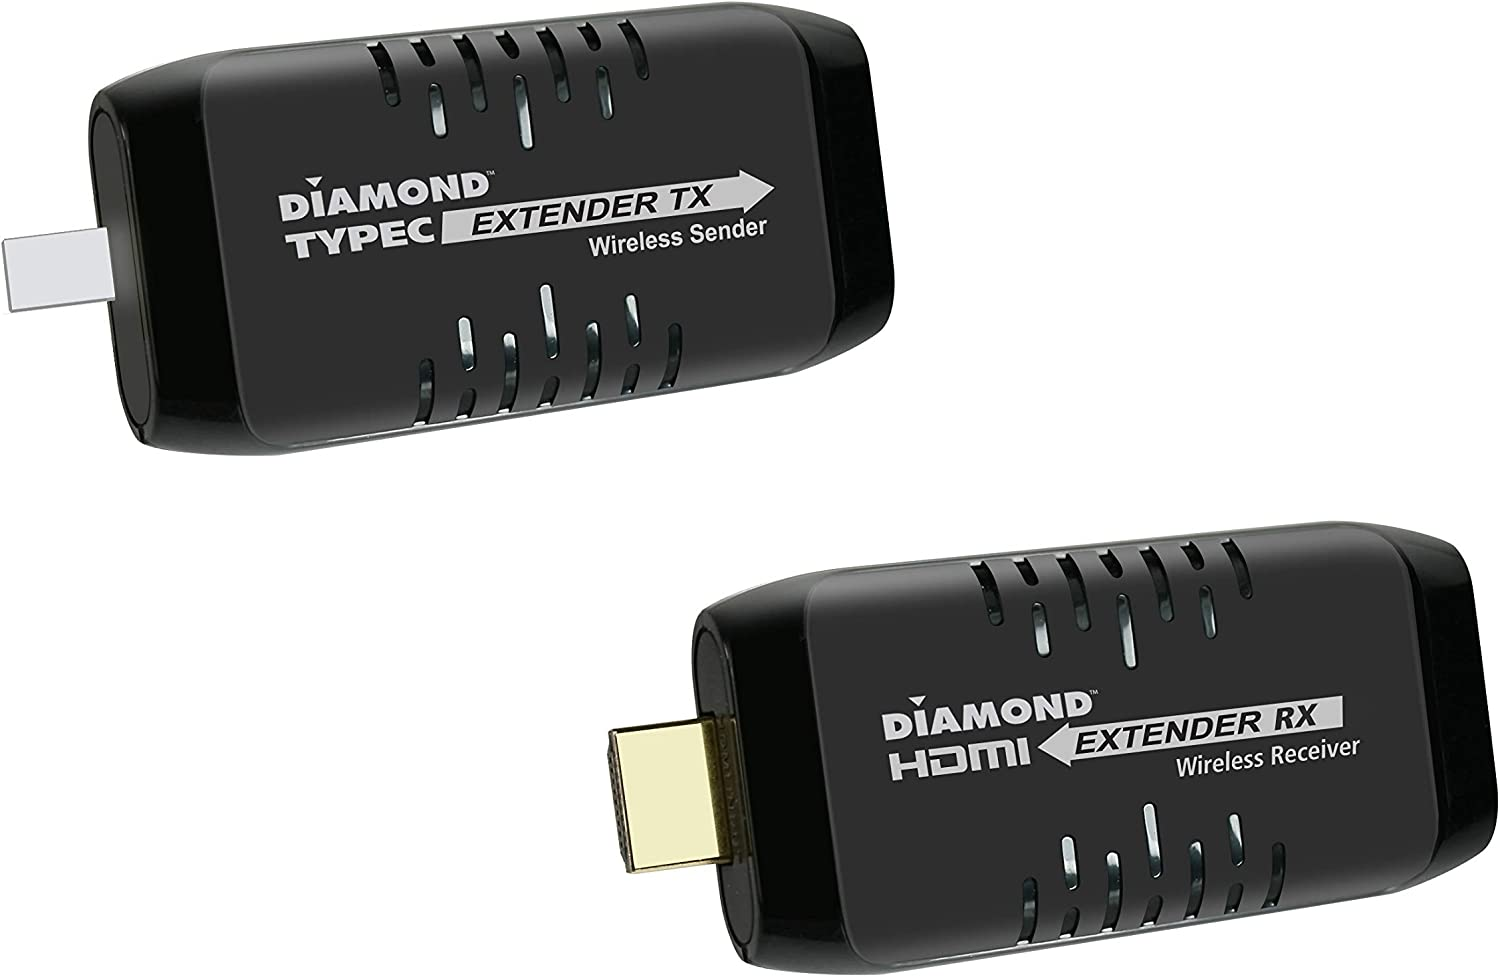 Diamond Multimedia Wireless USB Type C to HDMI Extender Kit, Transmitter & Receiver for HD 1080P PC to TV/Projector Streaming for Home Entertainment, Conference Room and Educational Applications